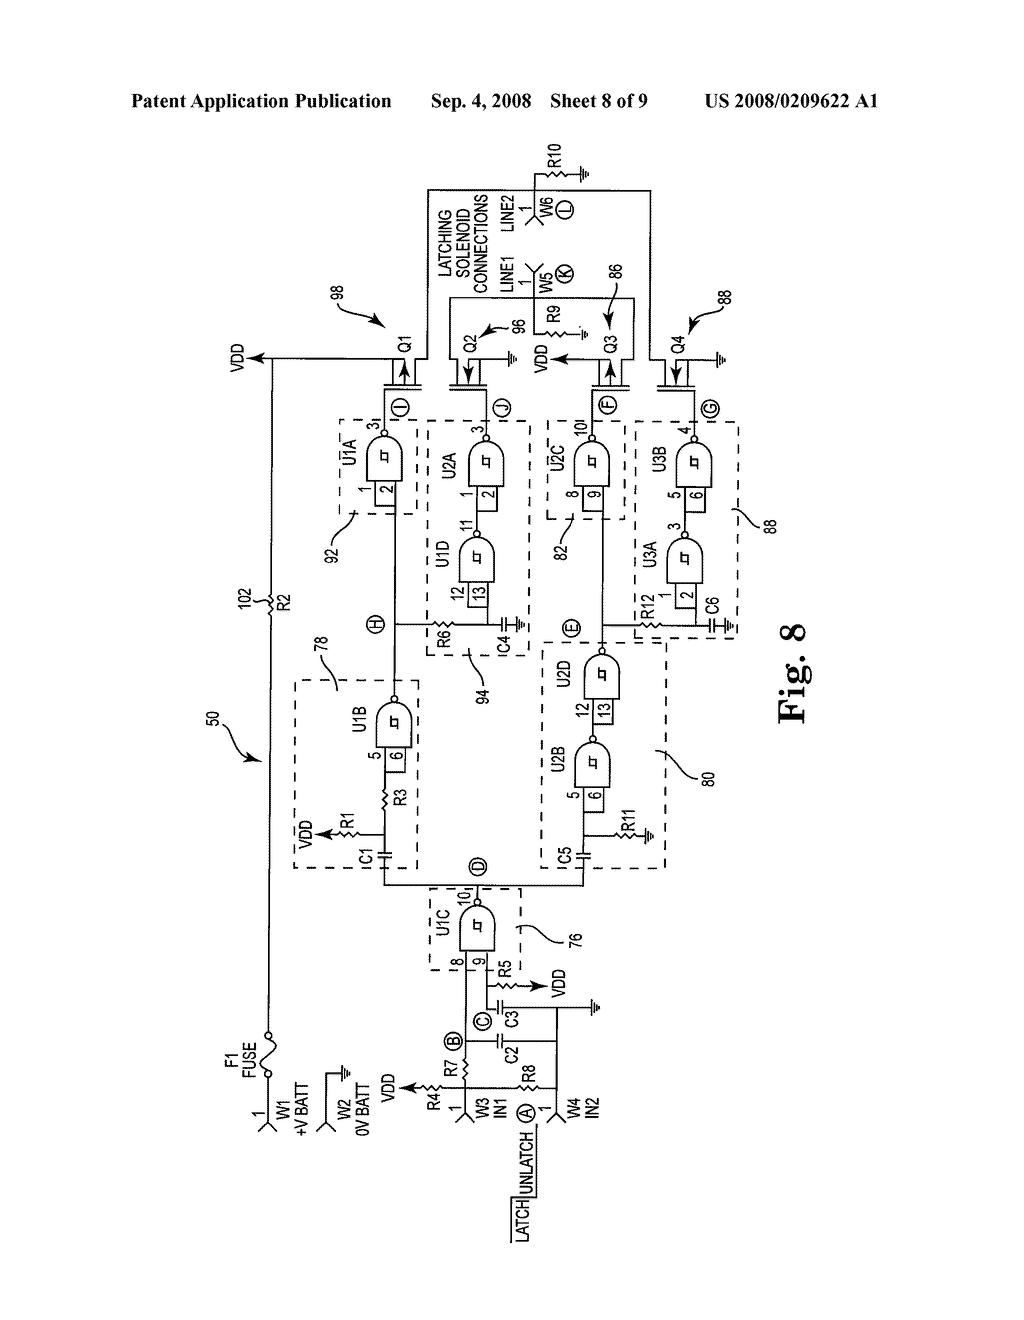 Electronic toilet tank monitor utilizing a bistable latching